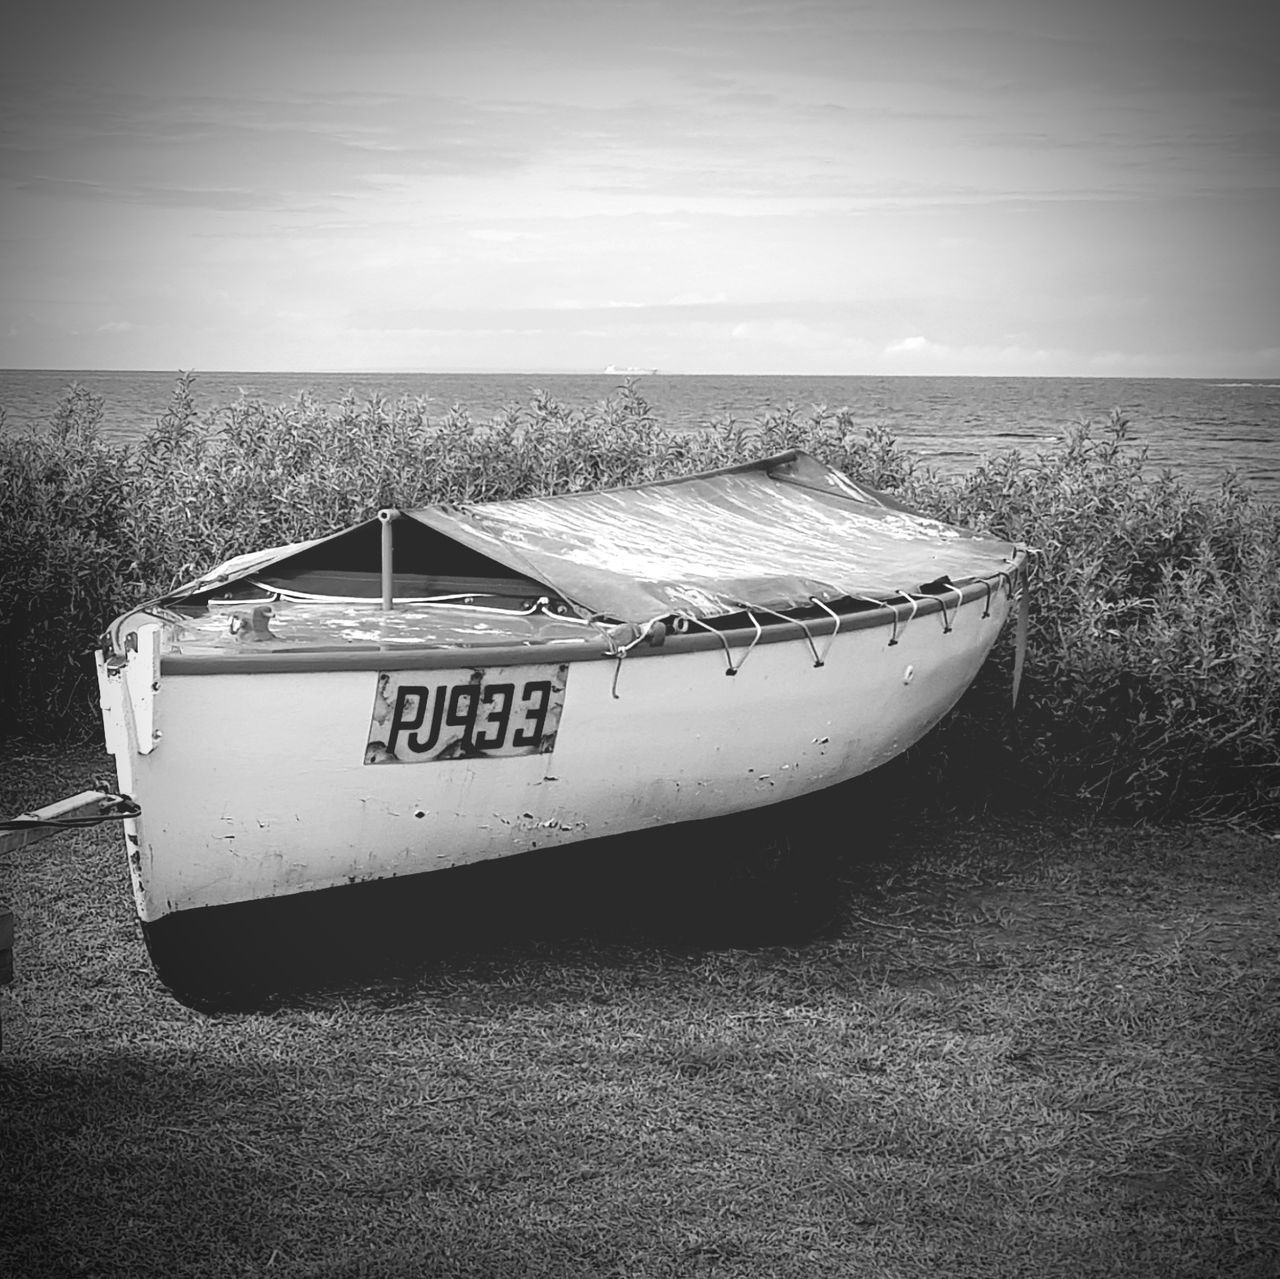 Nautical Vessel Water Day Outdoors Moored Sea Beach Grass Nature No People Sky Horizon Over Water